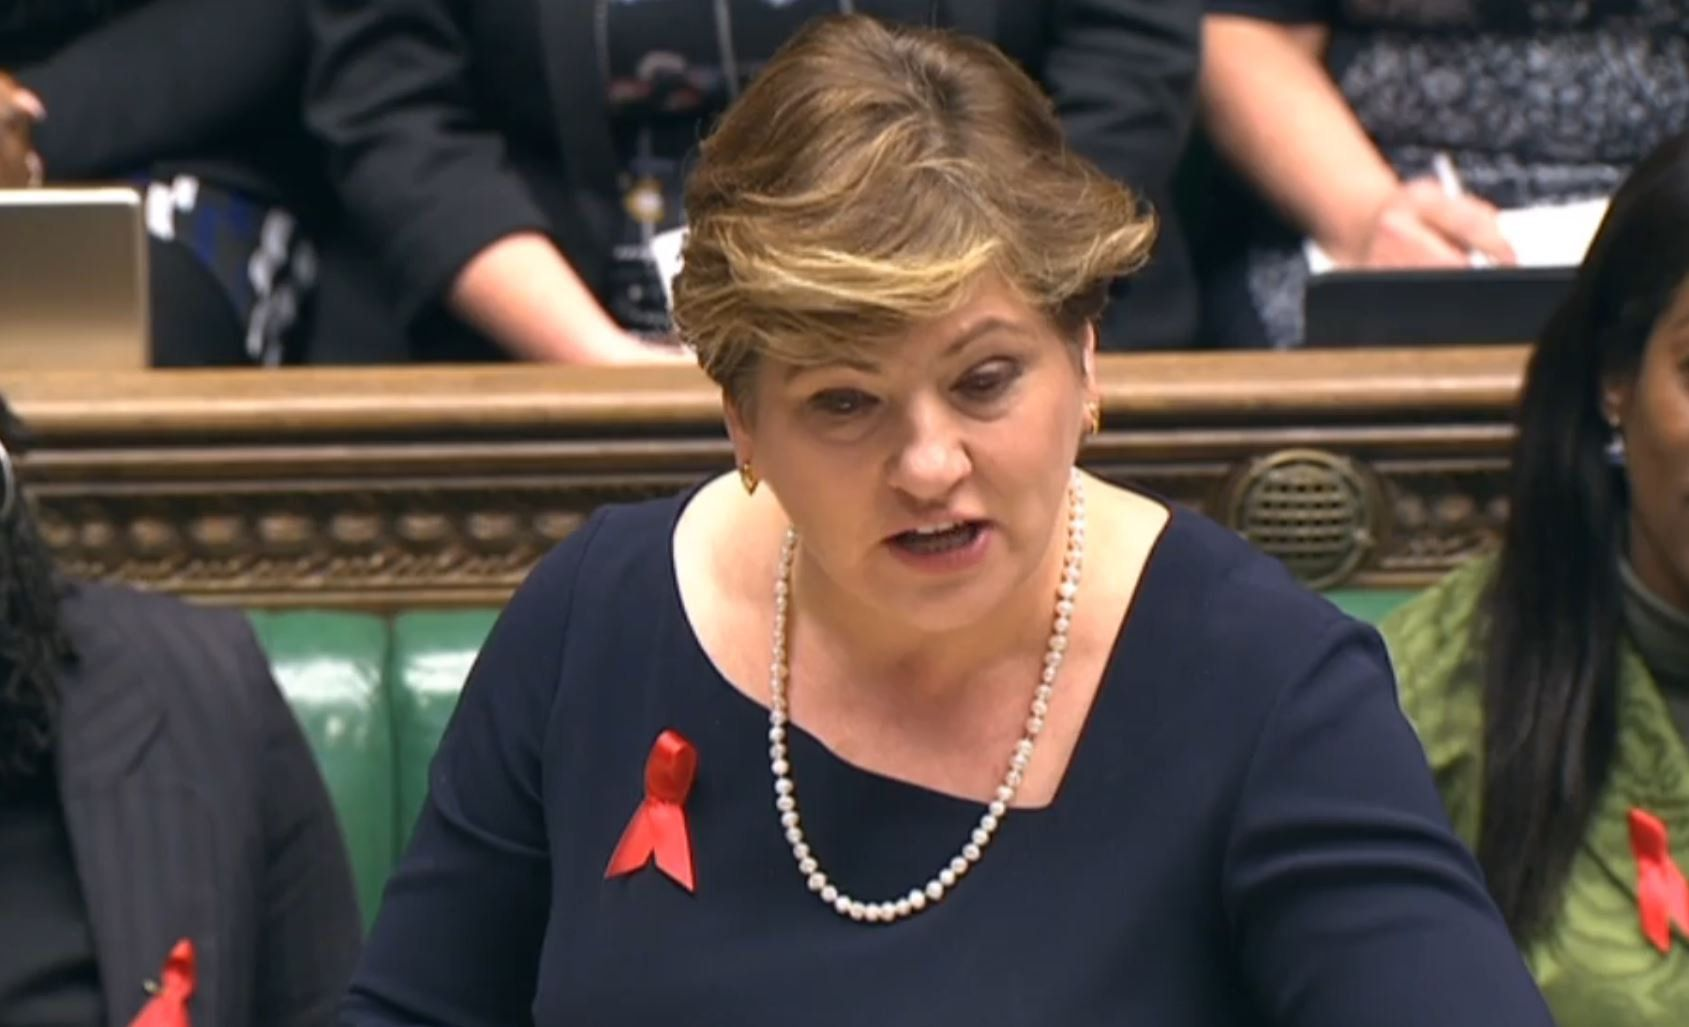 Emily Thornberry Jokes About Prince Harry Engagement In PMQs.